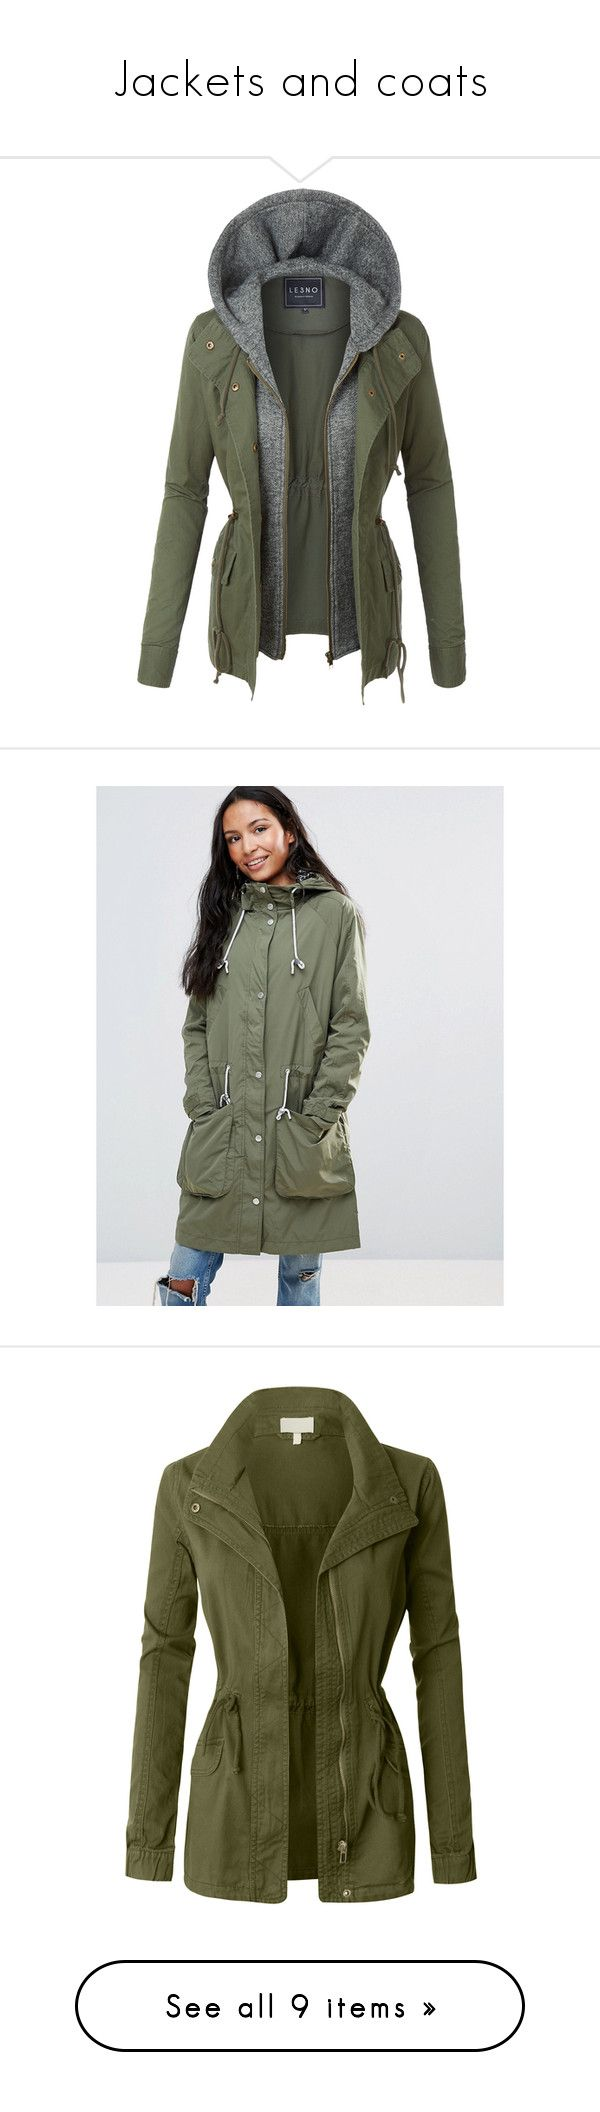 """""""Jackets and coats"""" by jenniferdubt-jd ❤ liked on Polyvore featuring outerwear, jackets, lightweight jackets, lightweight anorak jacket, safari jackets, military style jacket, lightweight military jacket, green, lightweight zip jacket and green parkas"""